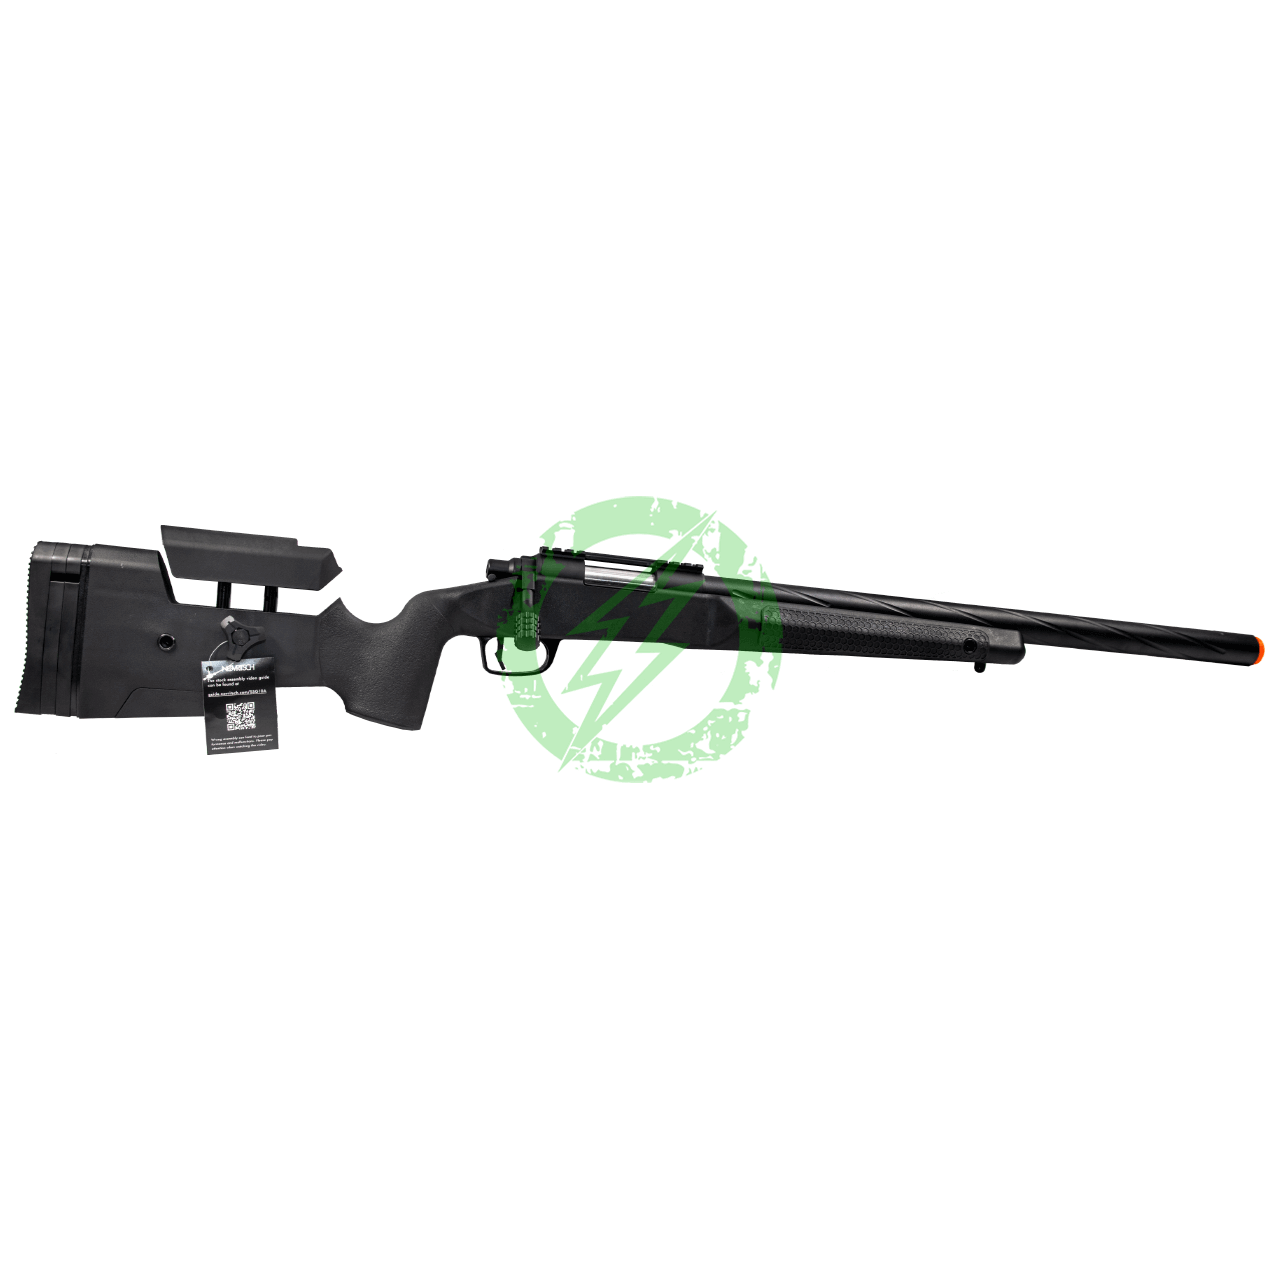 Novritsch SSG10 Airsoft Sniper Rifle | A2 Configuration right